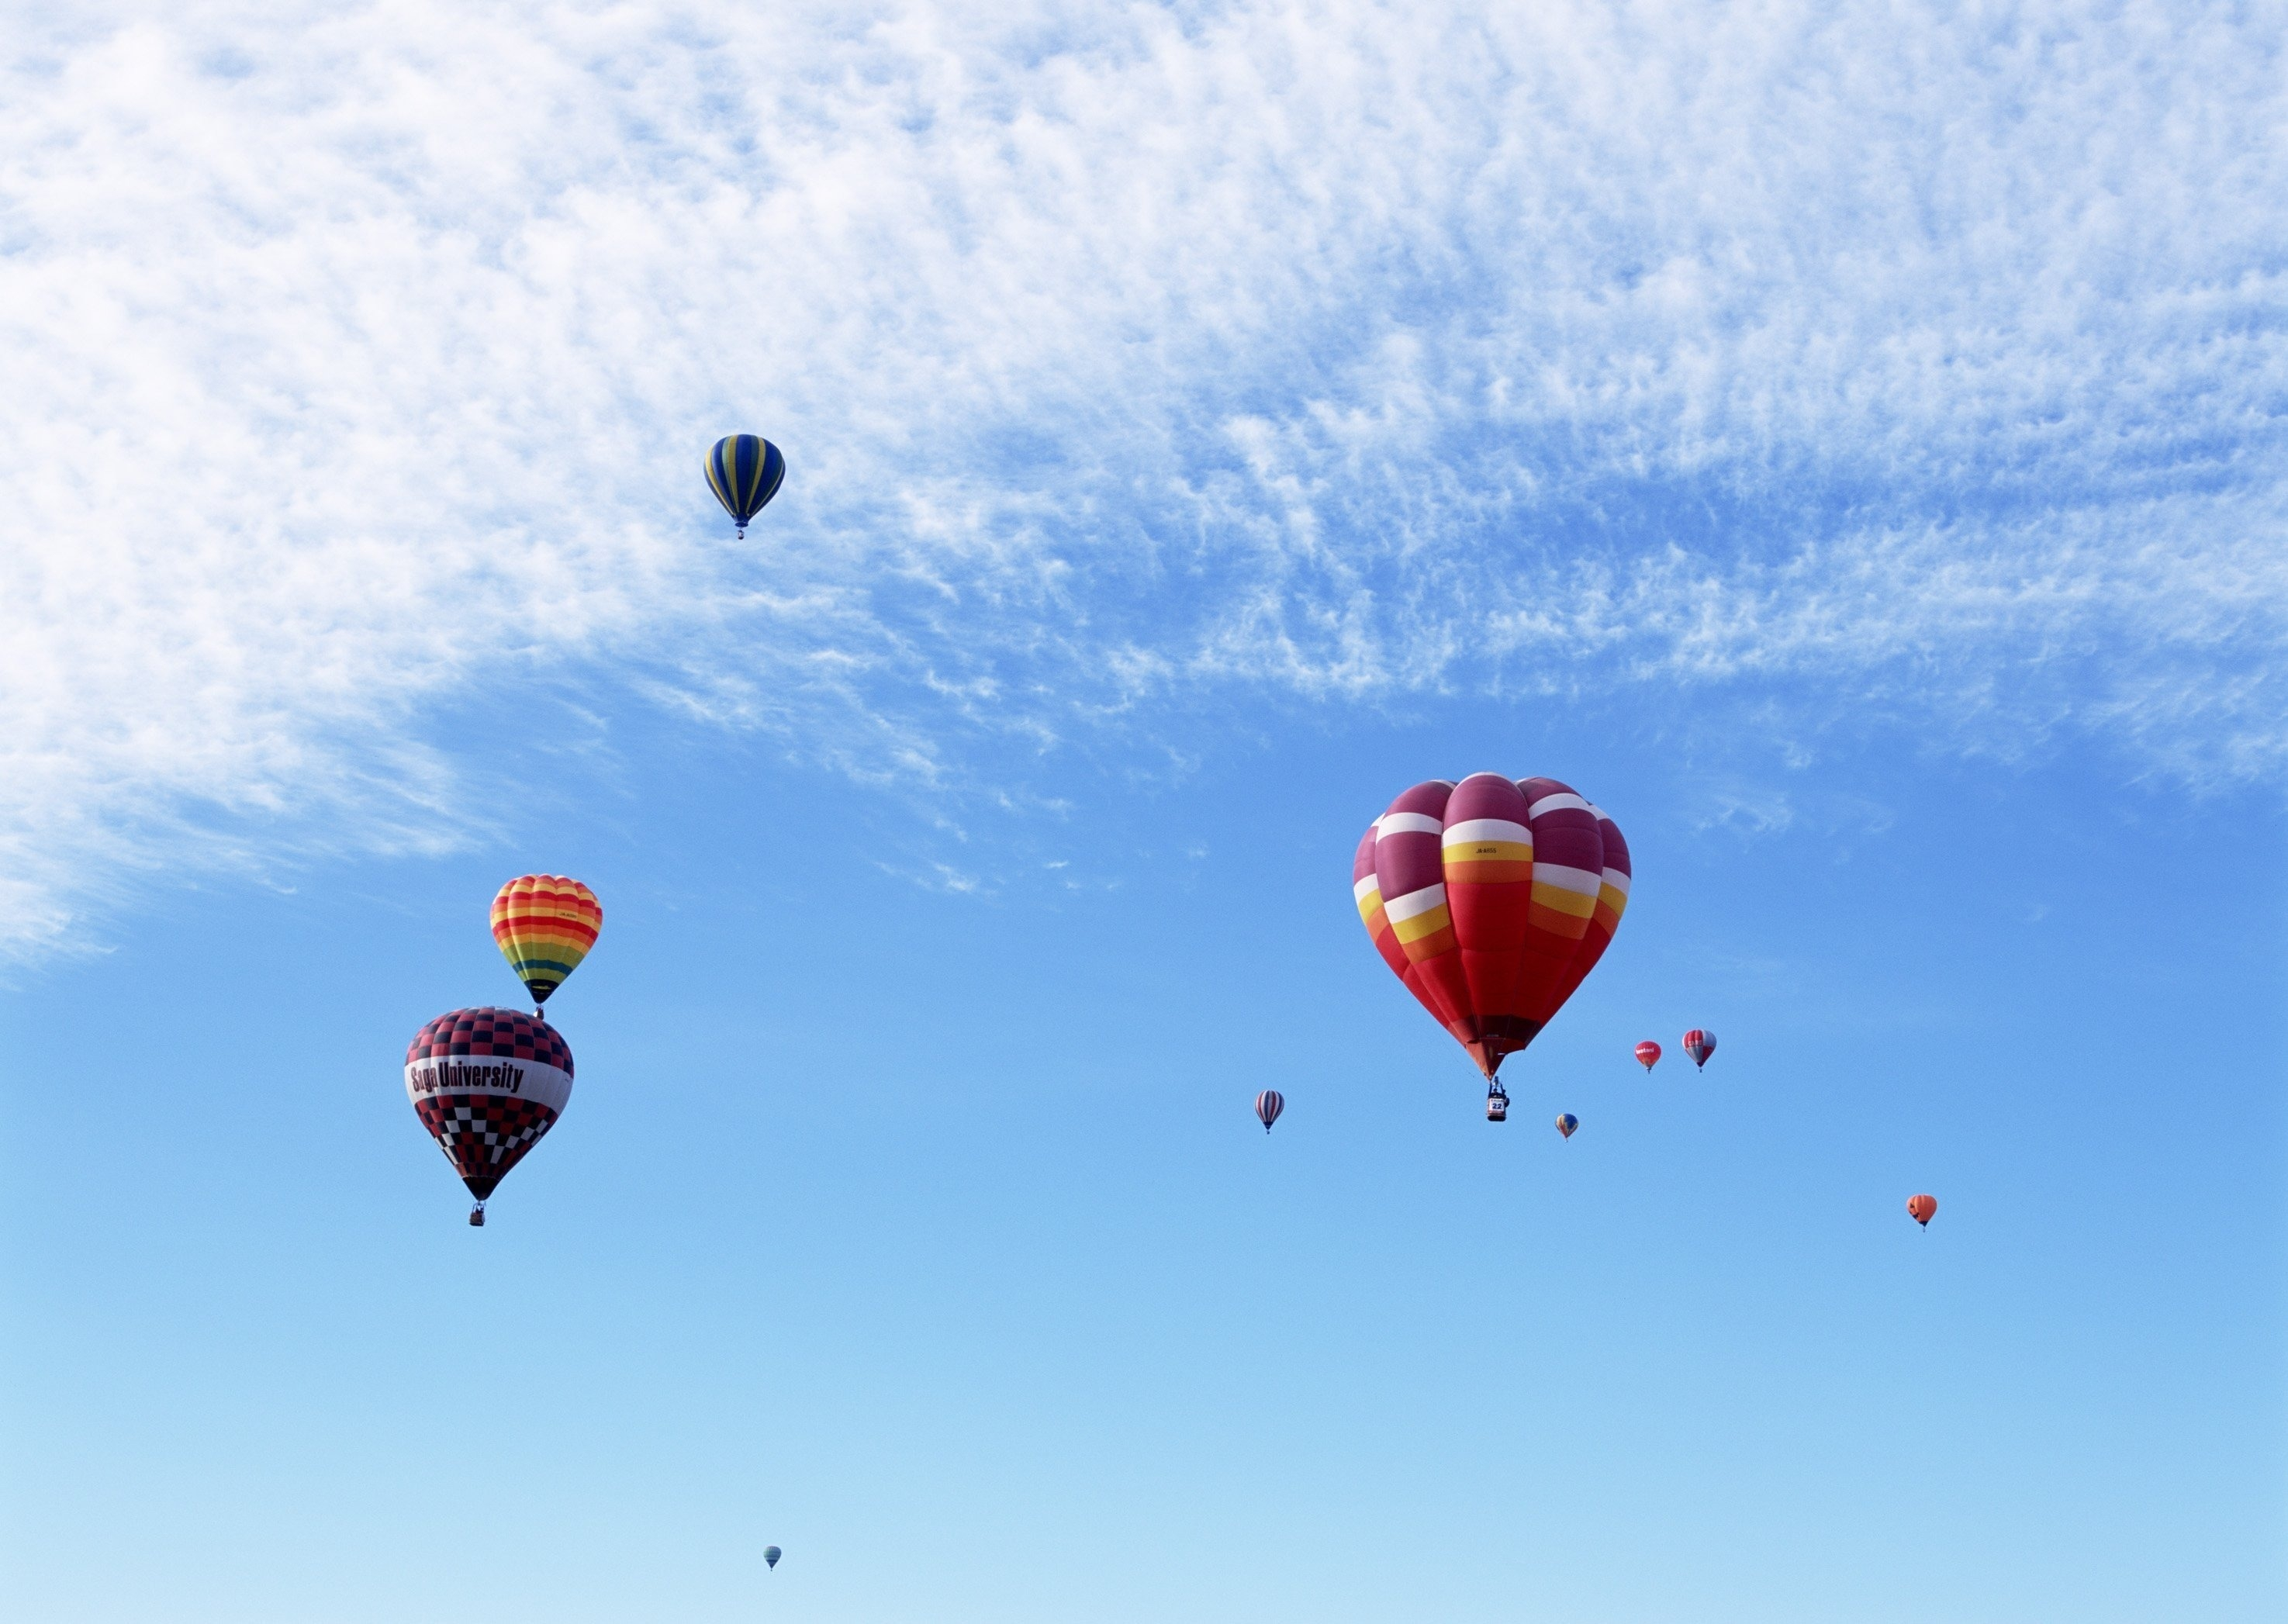 120843 Screensavers and Wallpapers Balloons for phone. Download Sky, Balloons, Miscellanea, Miscellaneous, Multicolored, Motley, Flight pictures for free